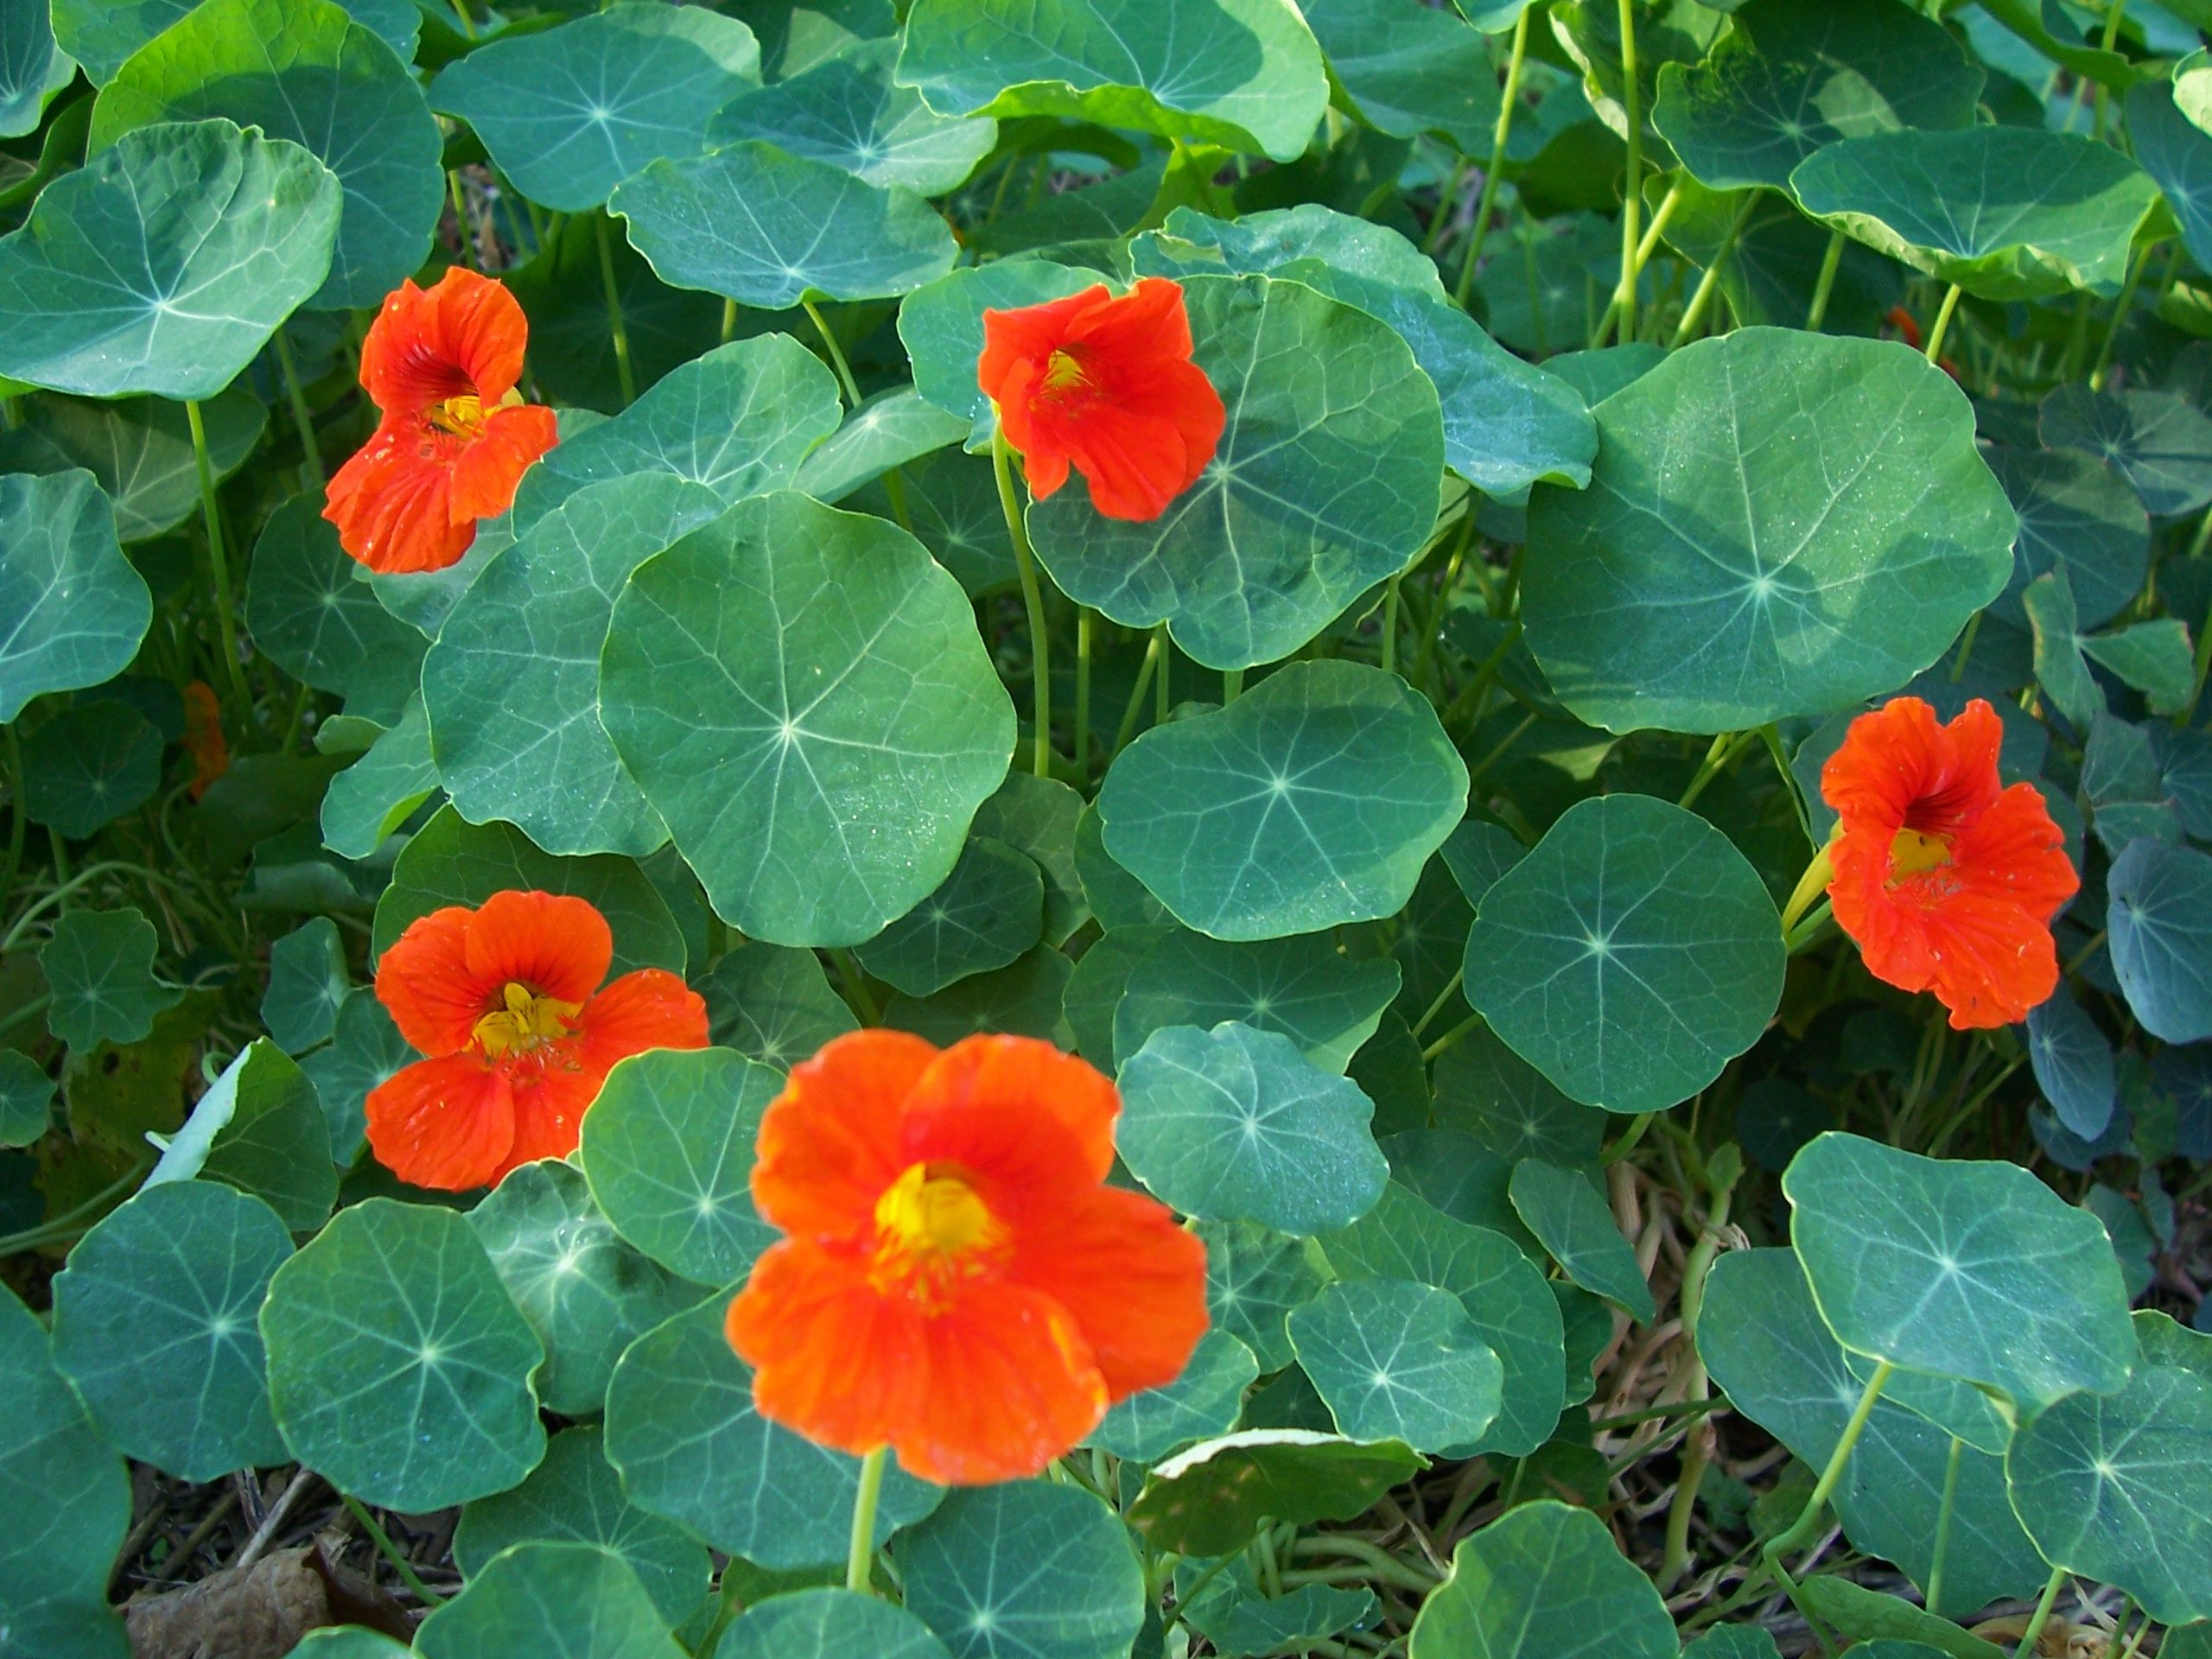 Nasturtium has edible tangy flowers and leaves